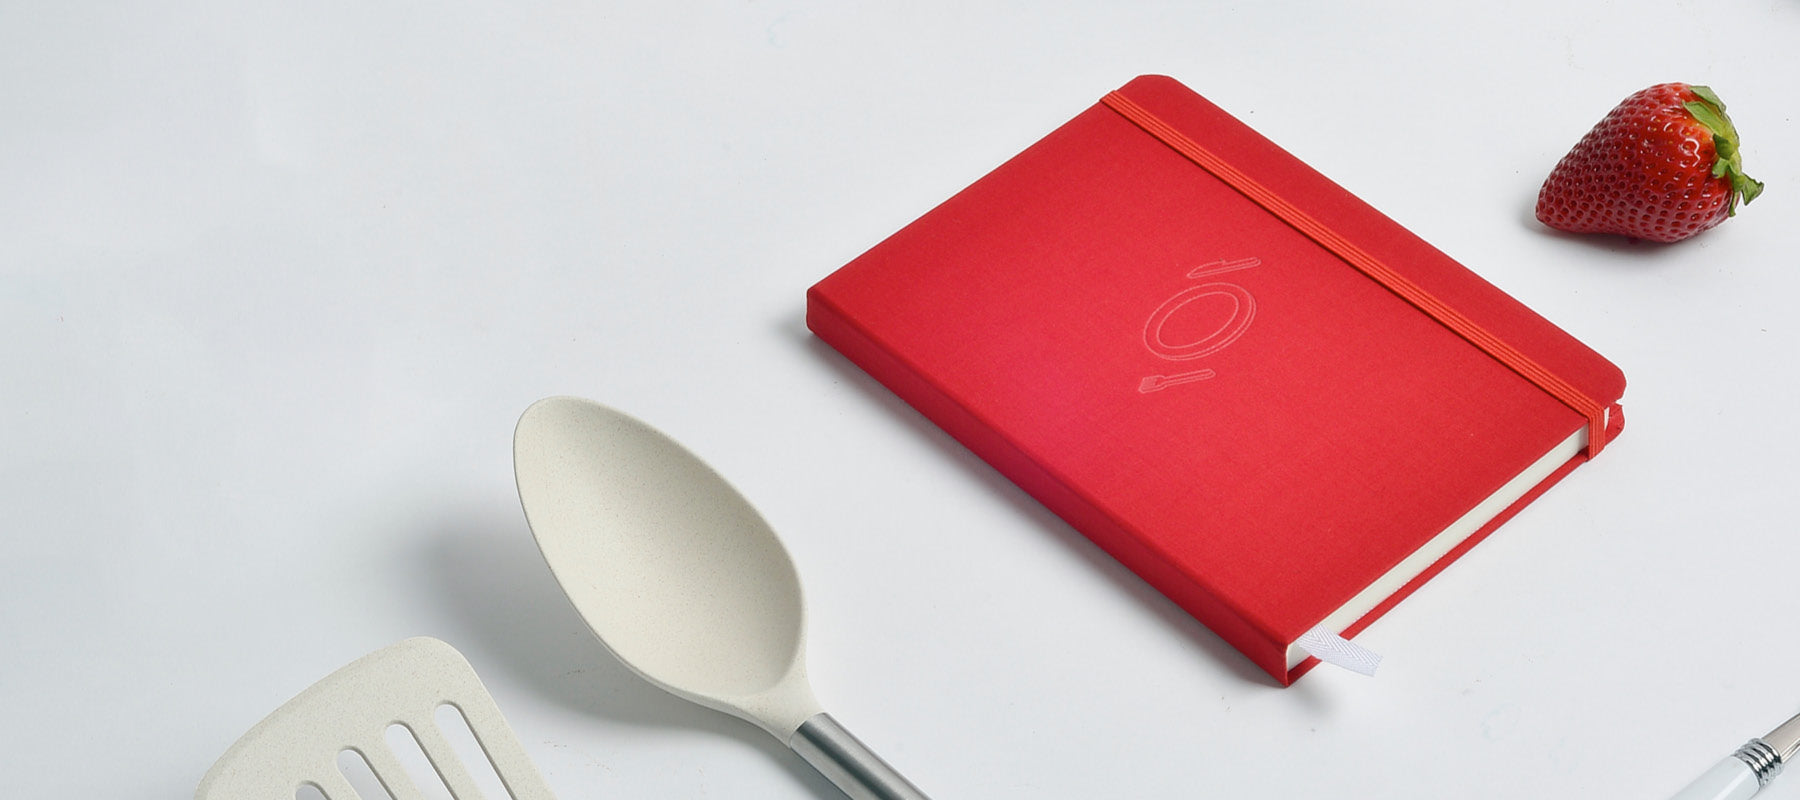 Savor Recipe Journal next to spoon and spatula